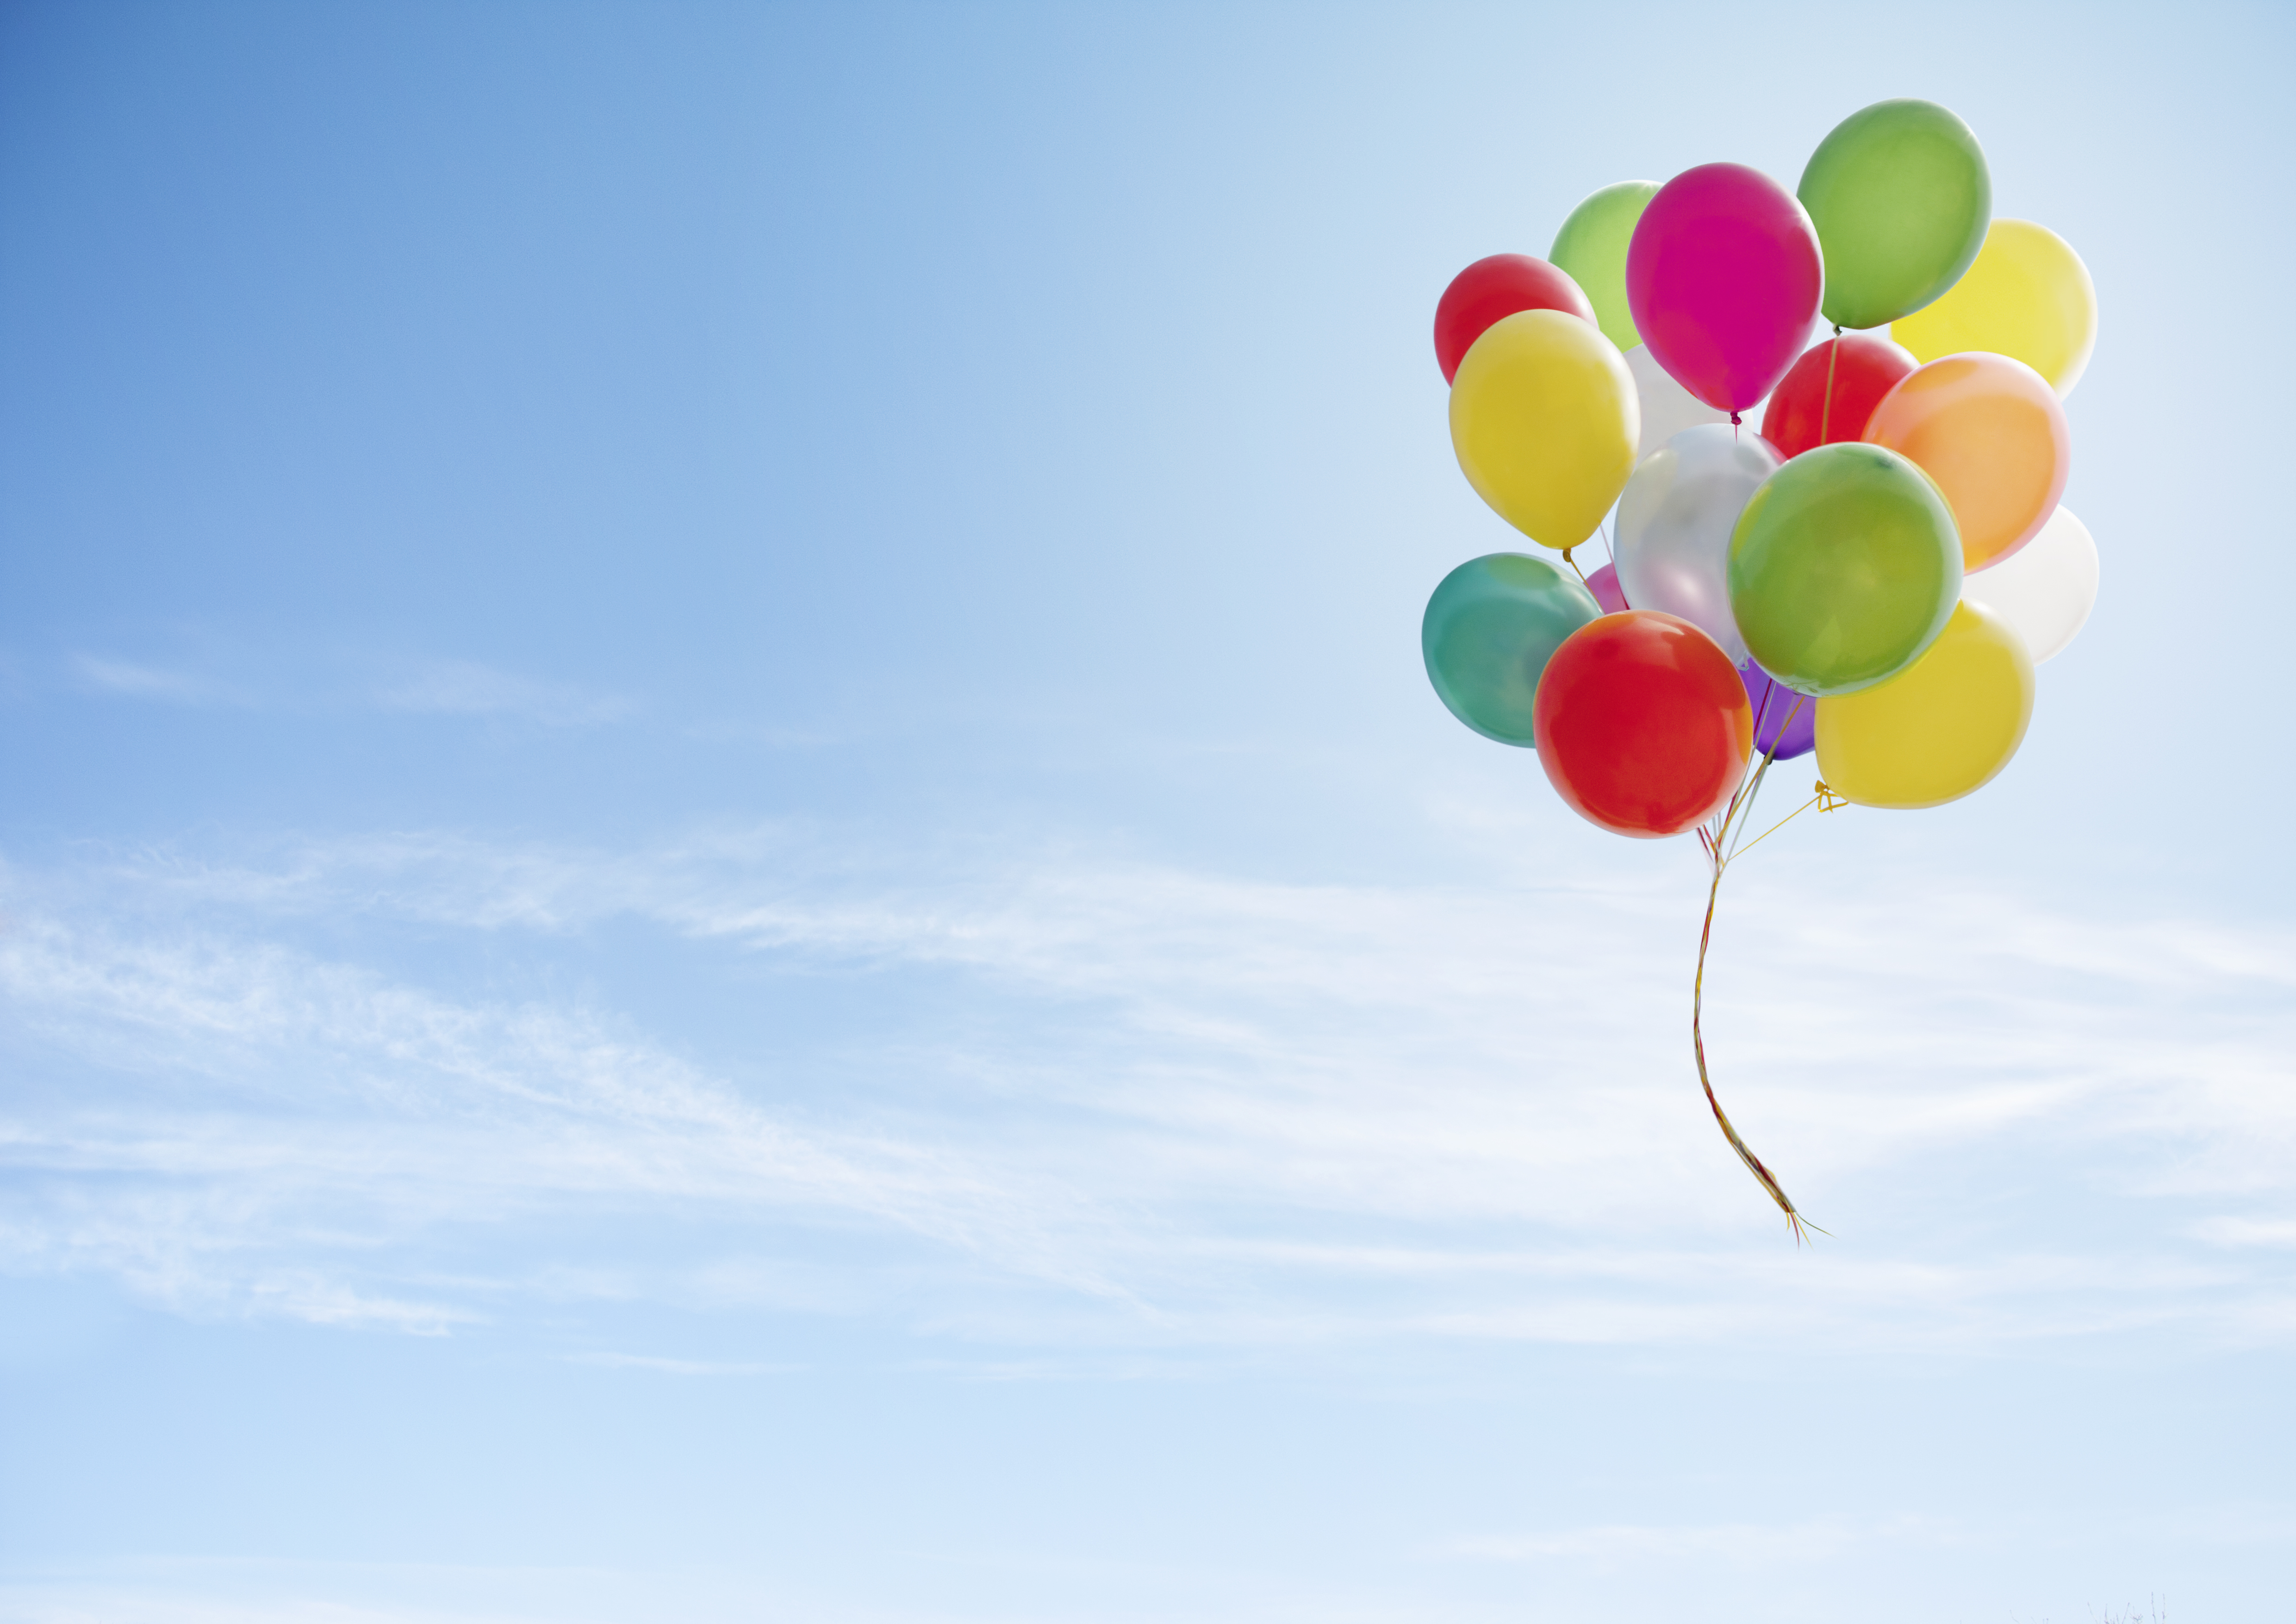 Happiness: 7 Habits to Live By | Time